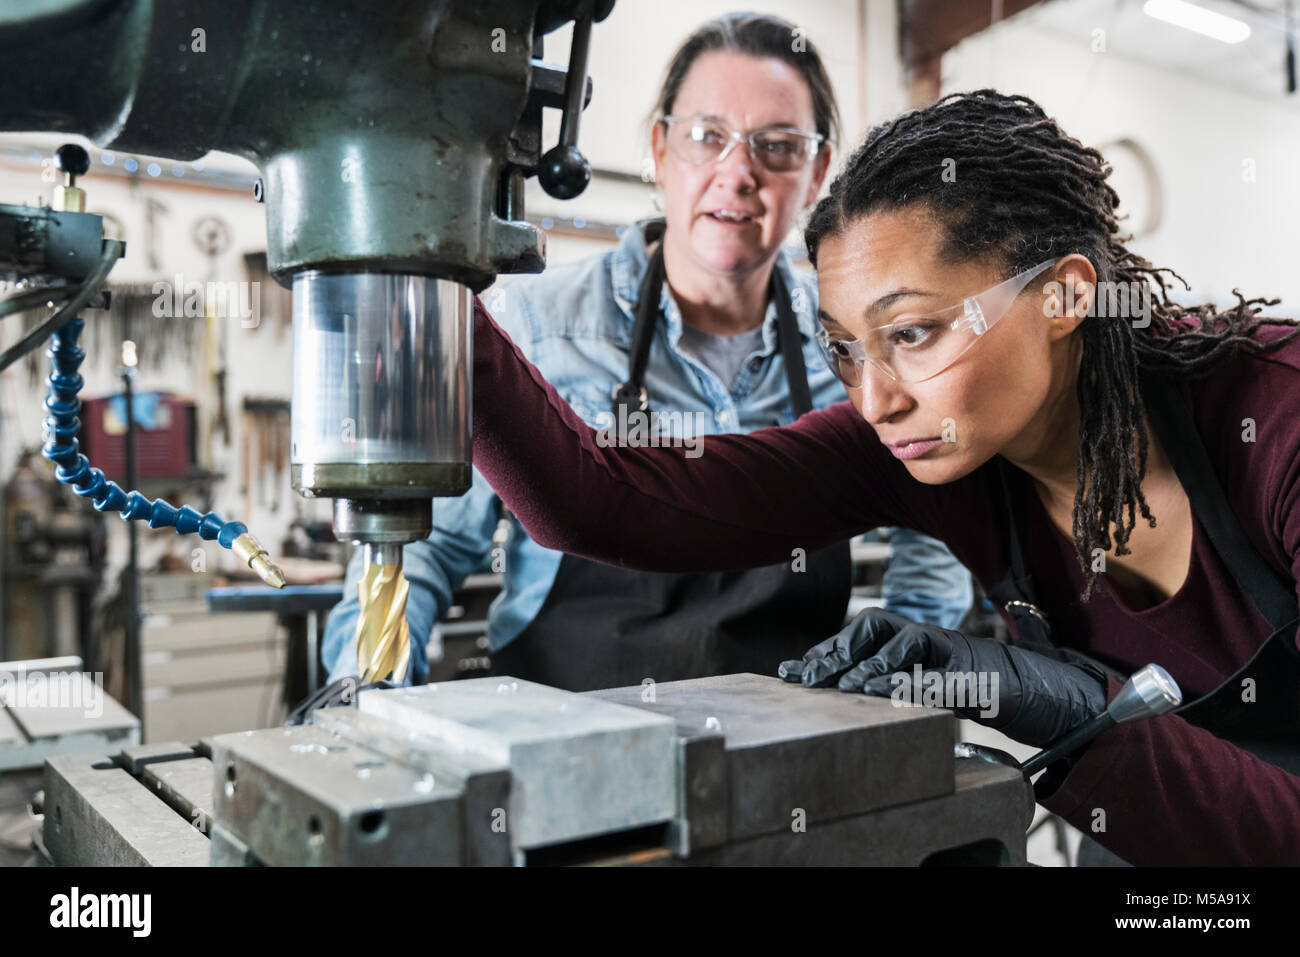 Two women wearing safety glasses standing in a metal workshop, working on metal drilling machine. Stock Photo